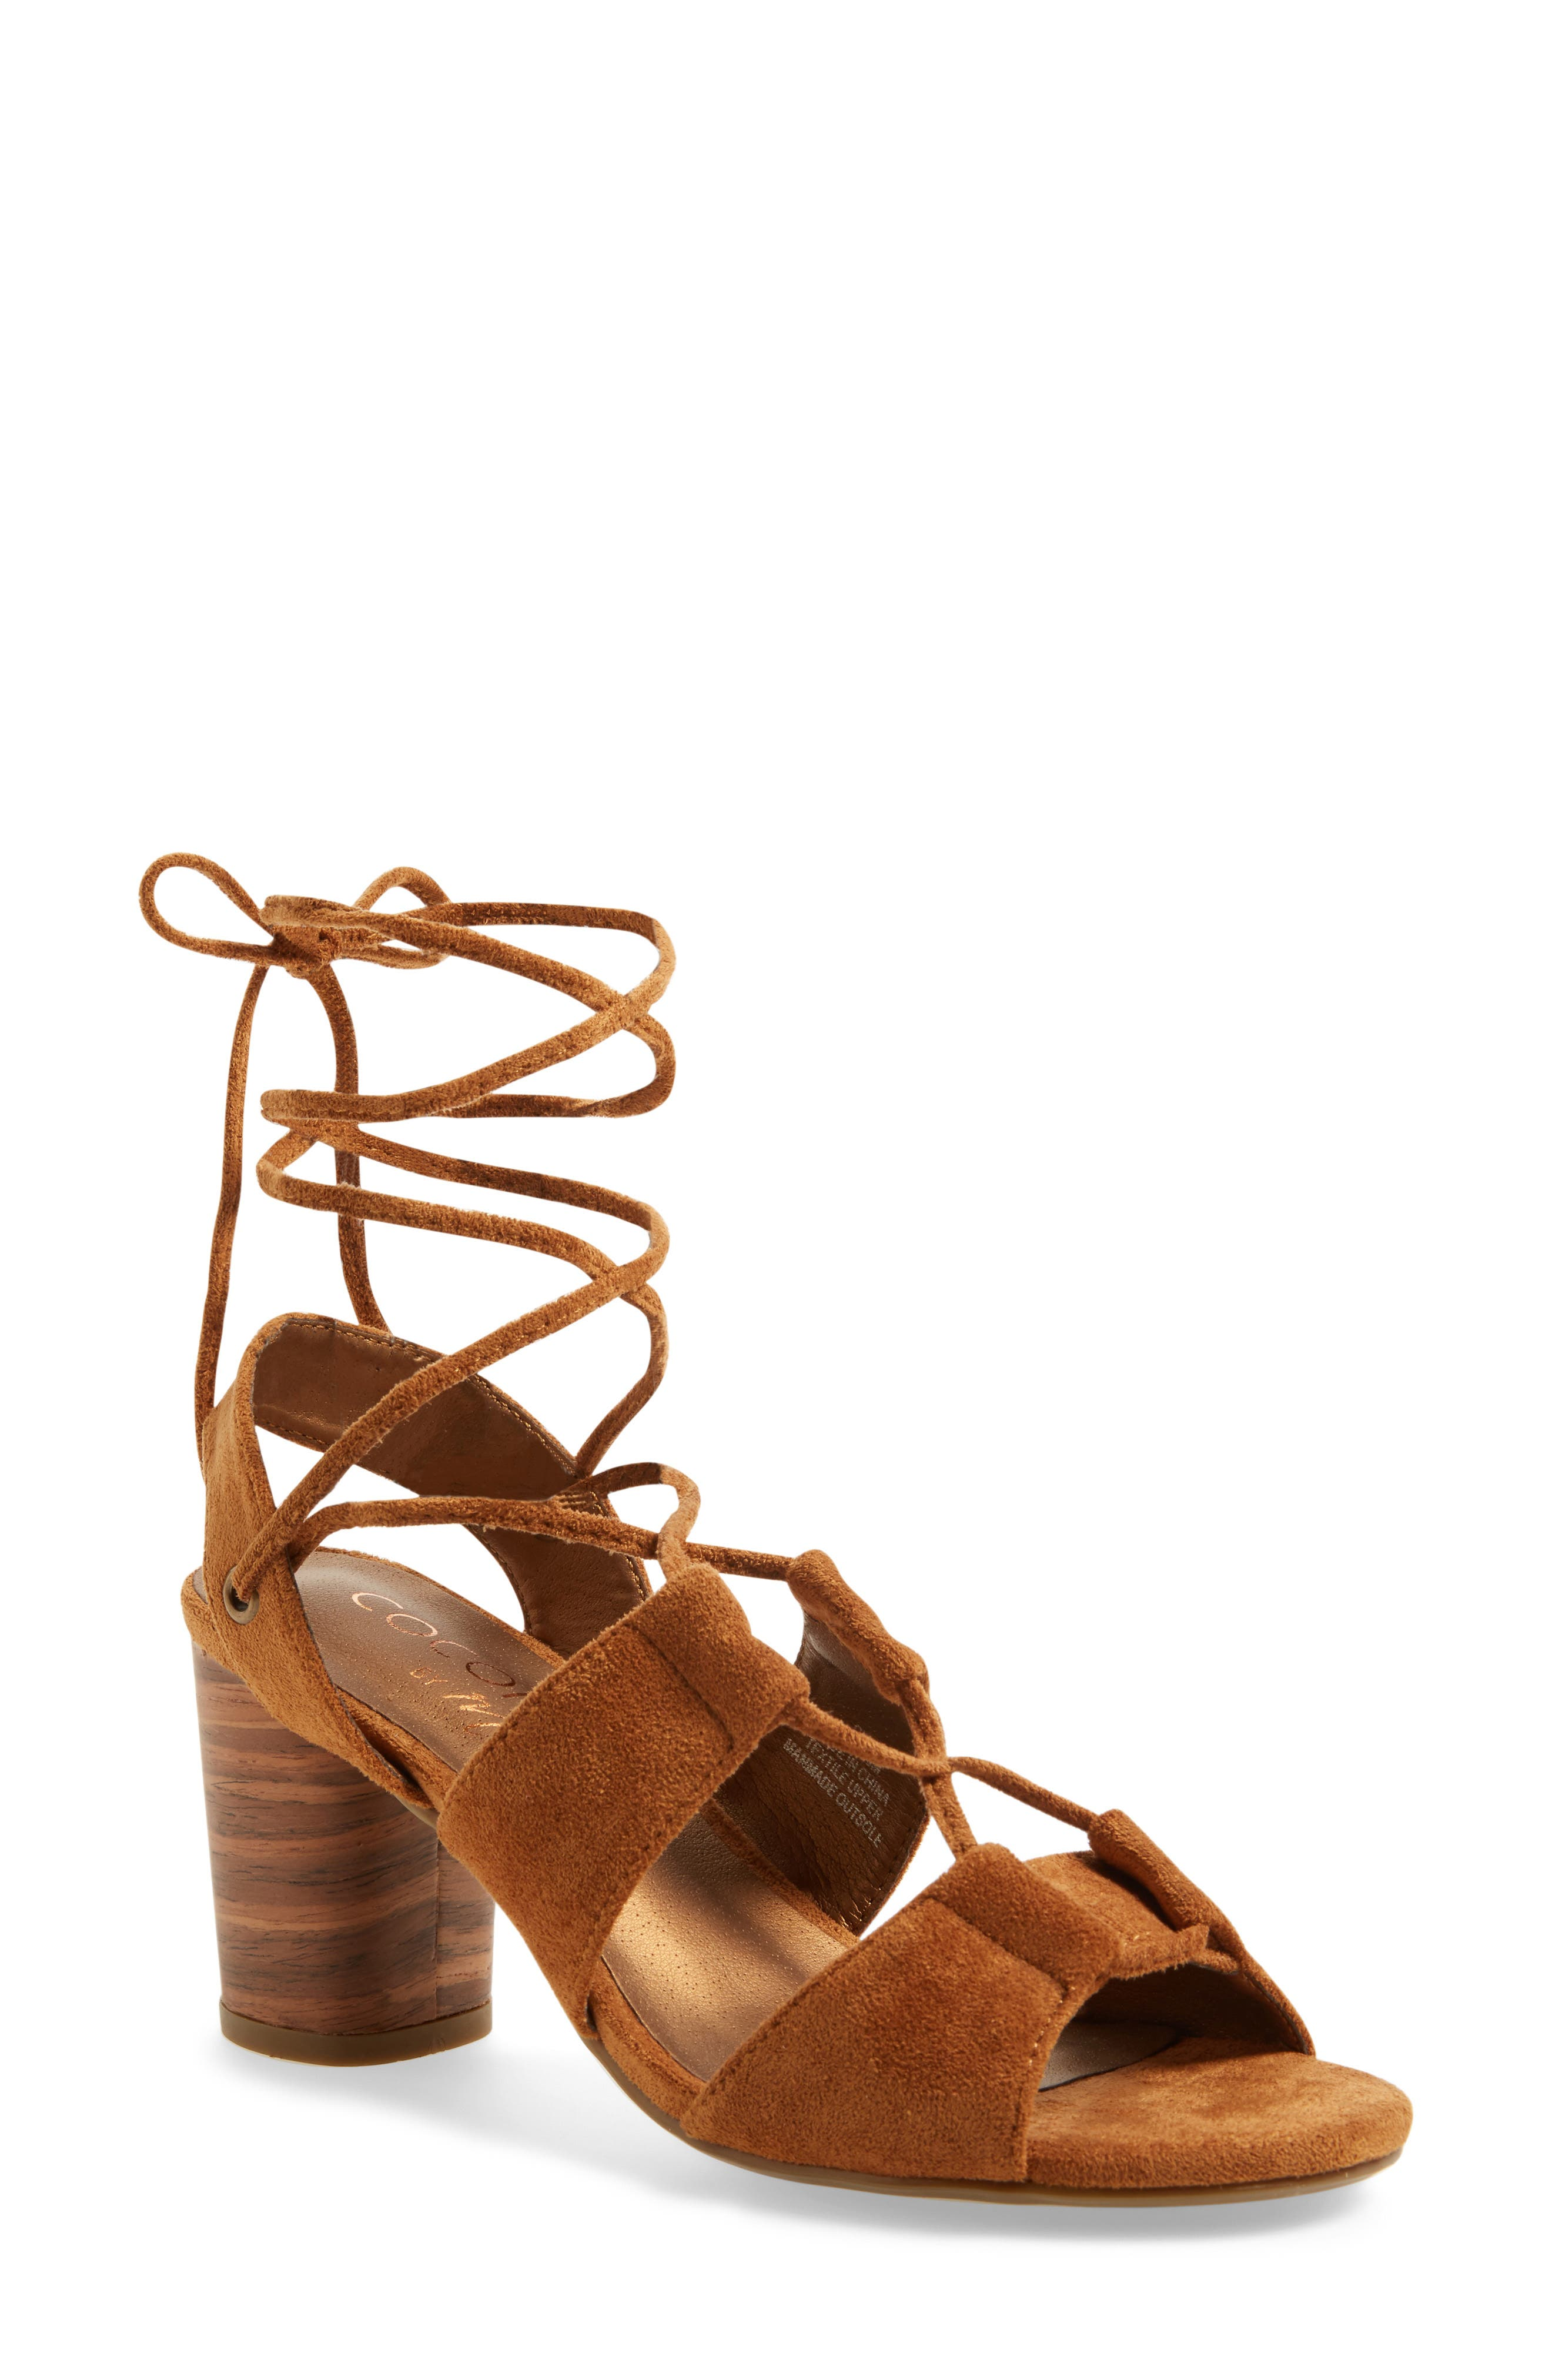 MATISSE Coconuts by Matisse City Sandal